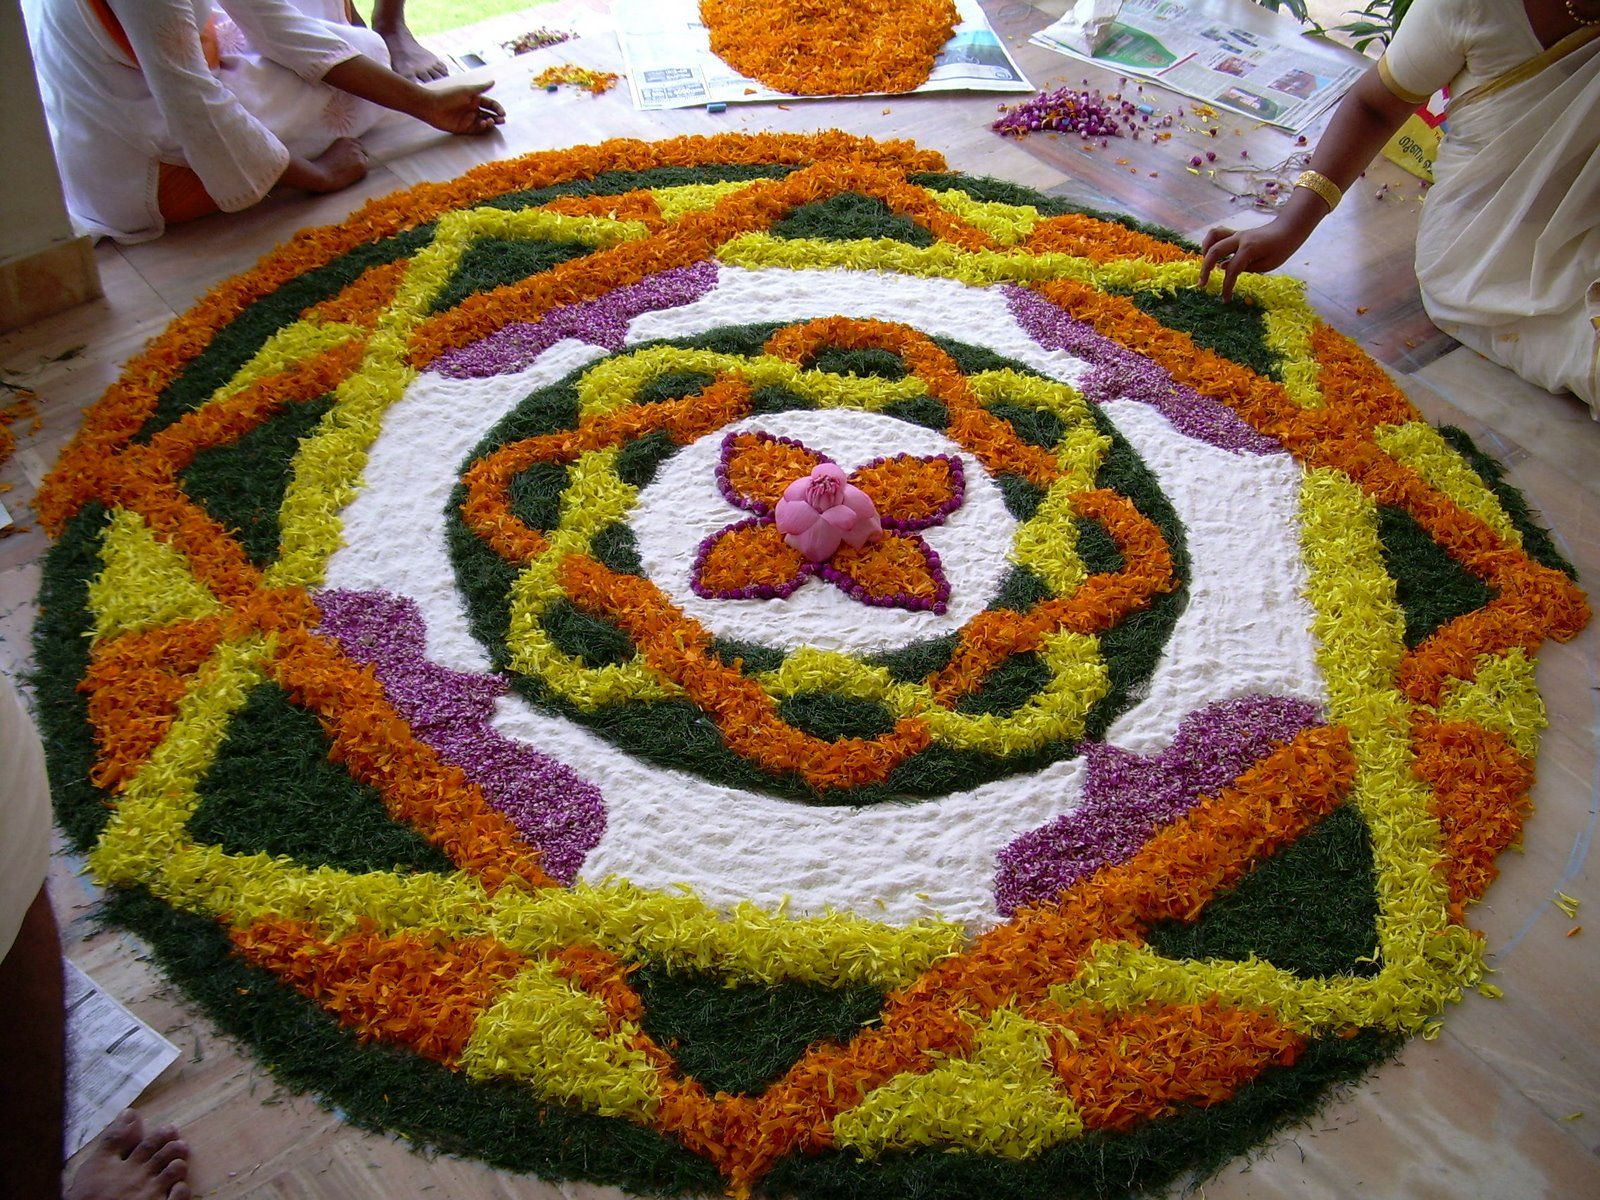 Indian Festival Decoration Diwali Rangoli Designs Latest Rangoli Patterns For Deepawali